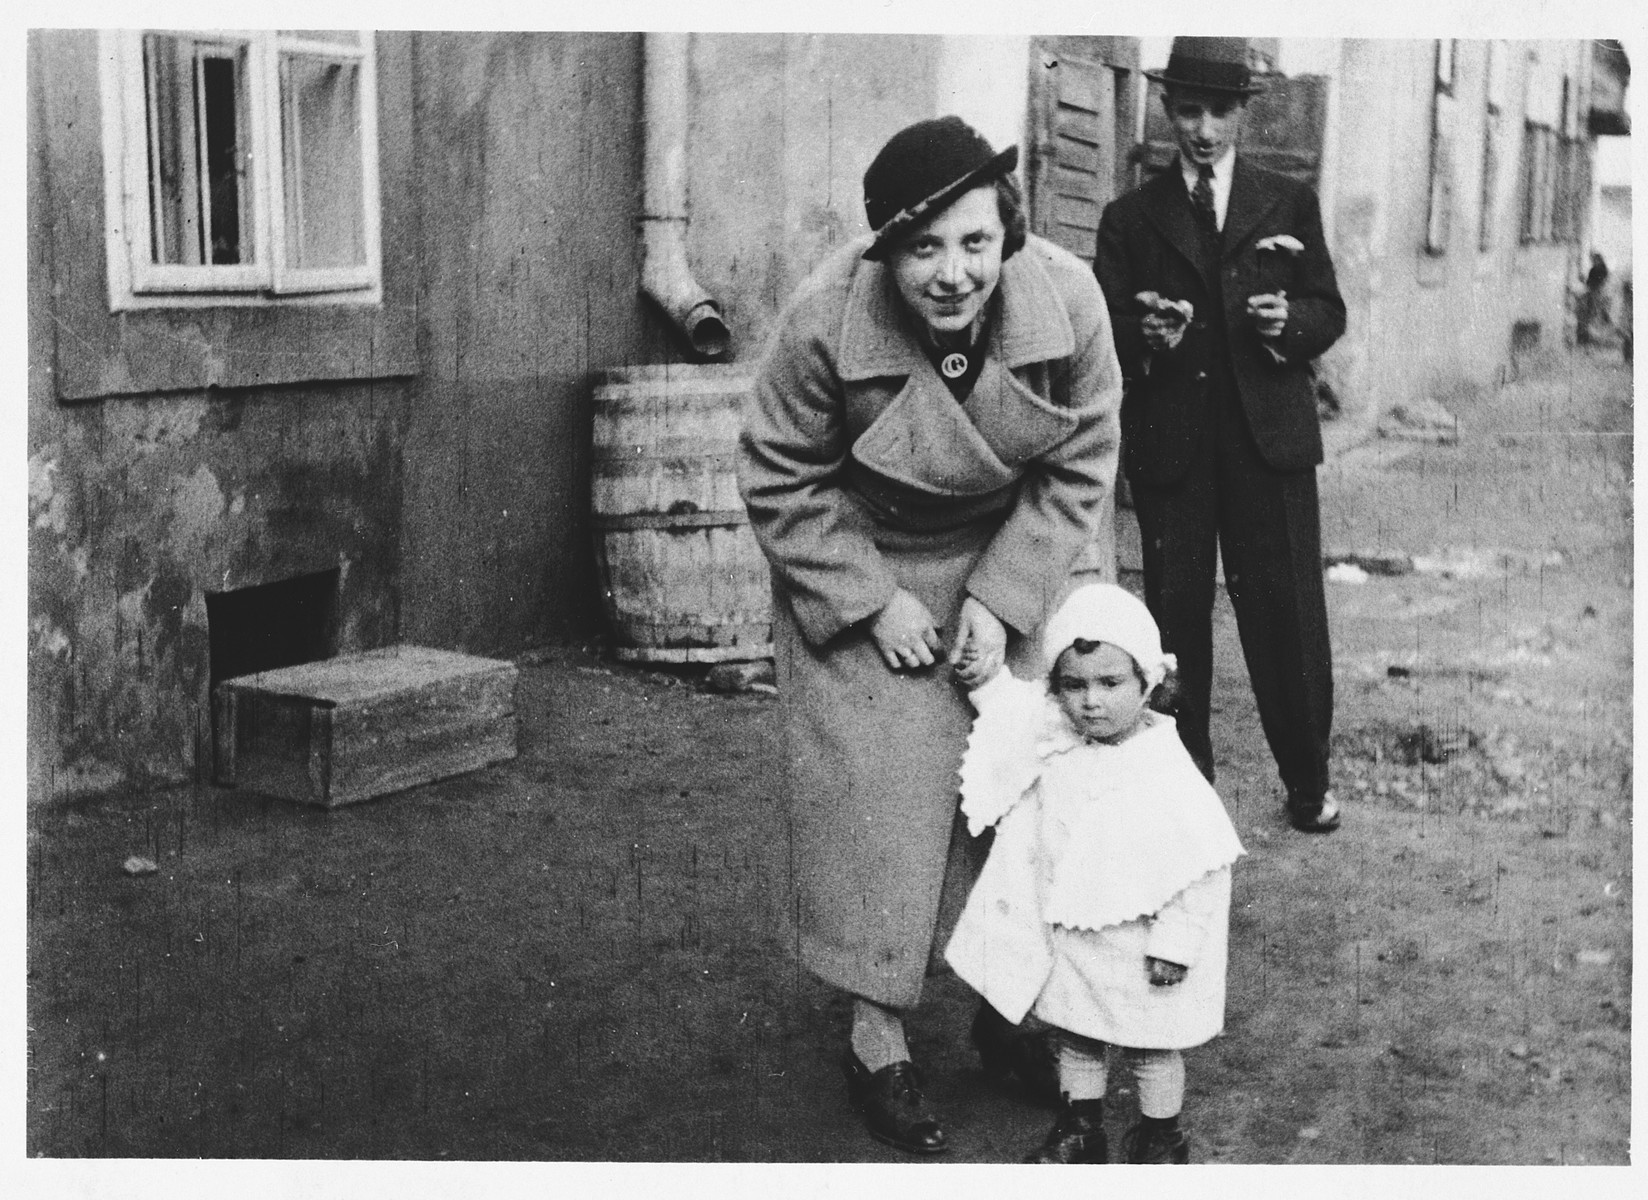 Grete and Eugene Kovacs pose on a street of Galanta together with their one-year-old niece Erika Taubner.